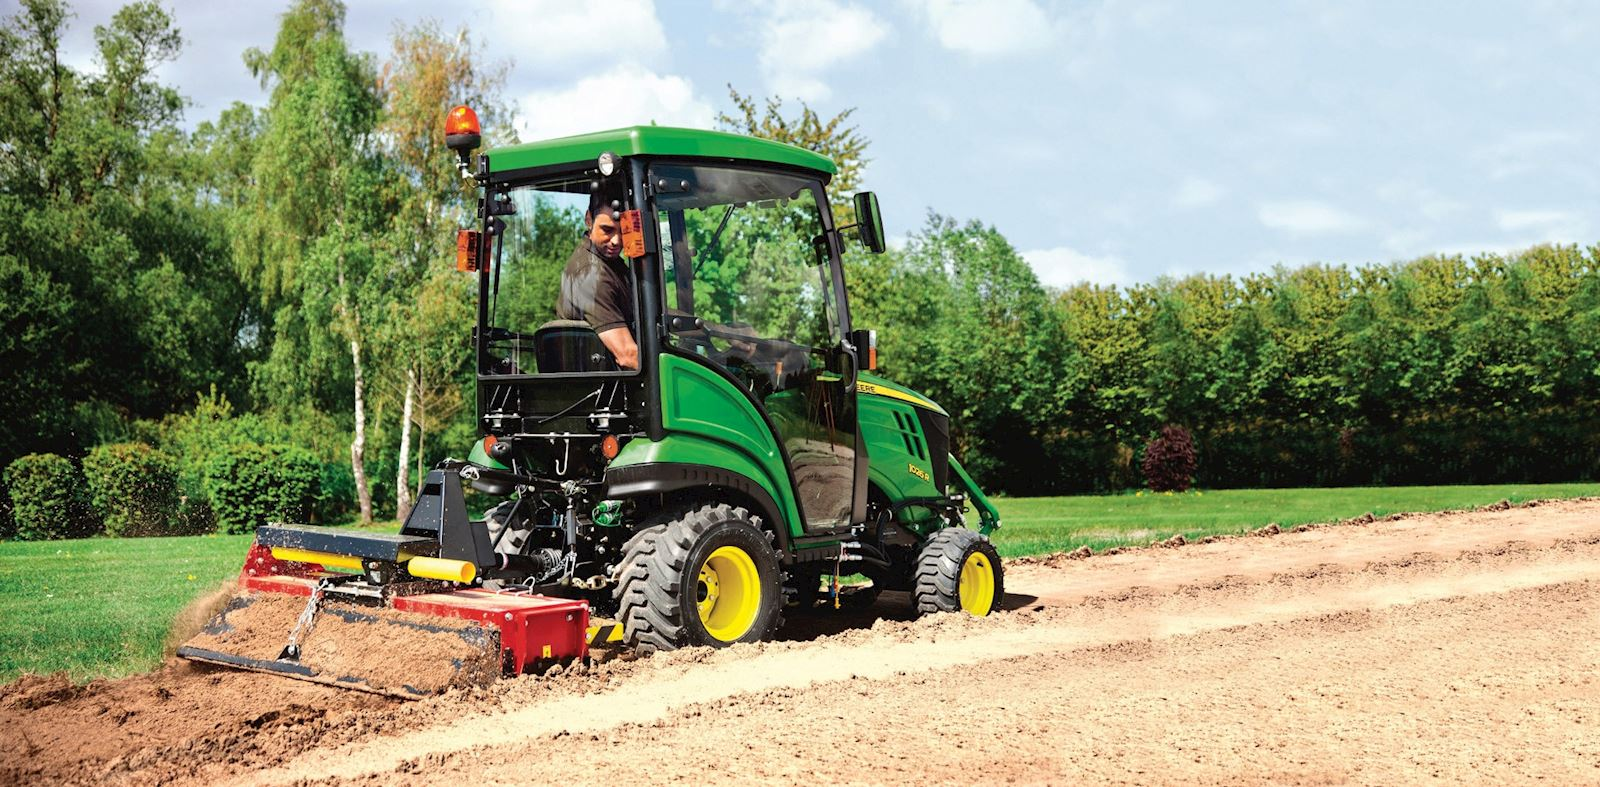 Choosing Implements & Attachments for your John Deere Tractor